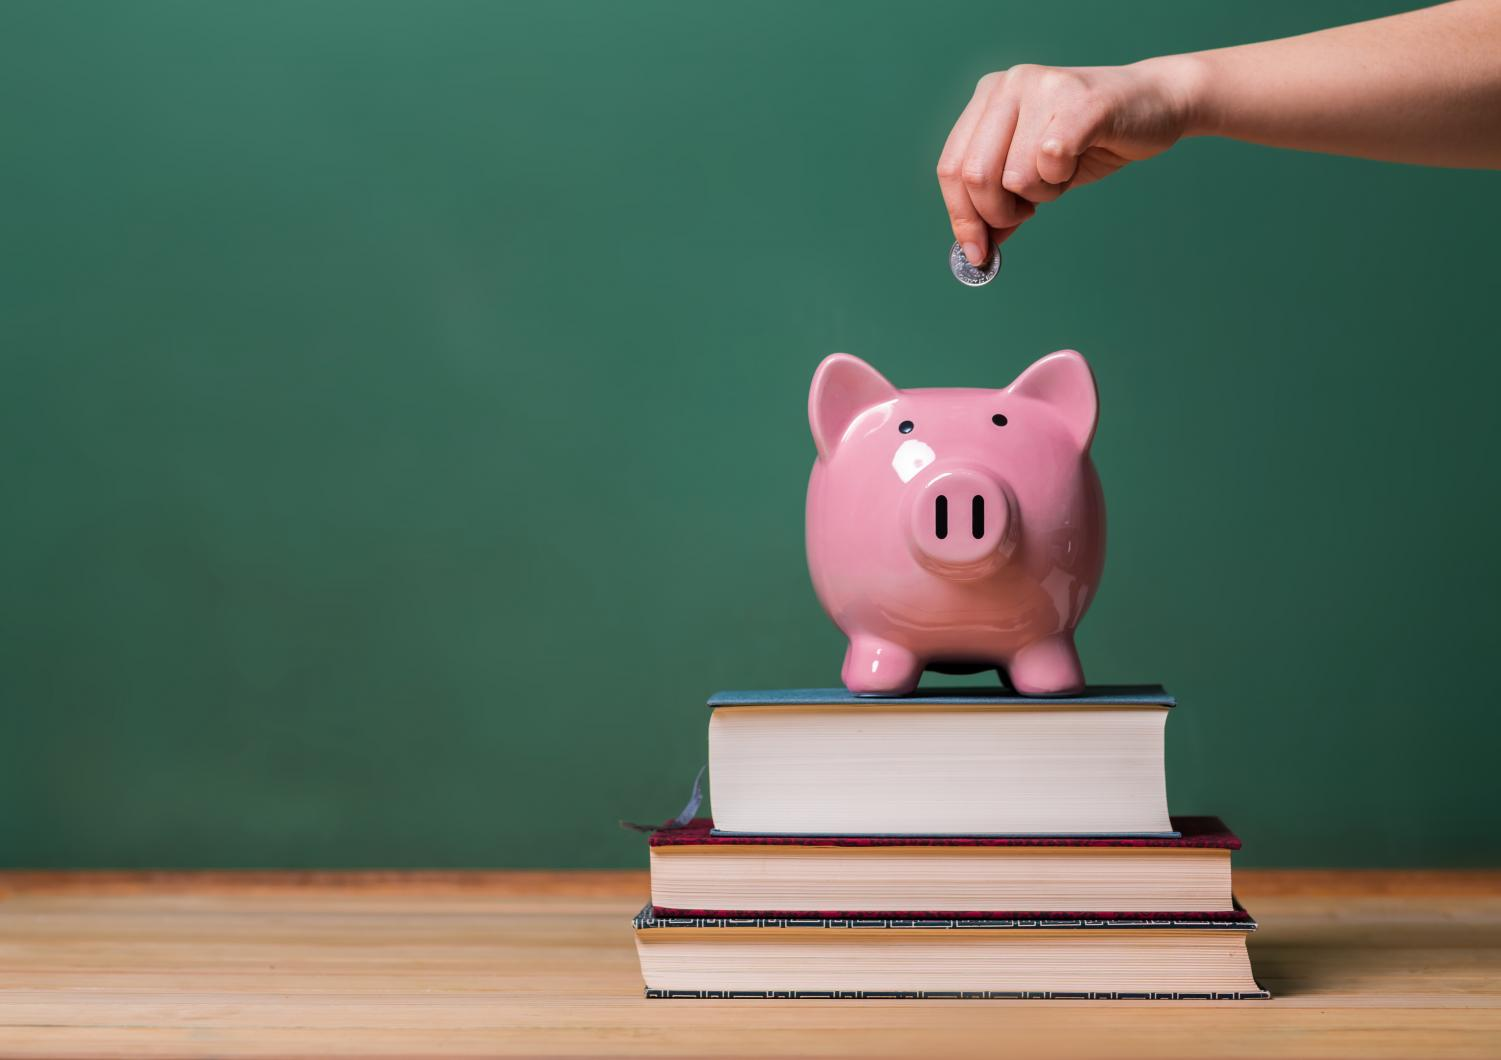 A piggybank on top of a pile of books represents the overall concept of the article.